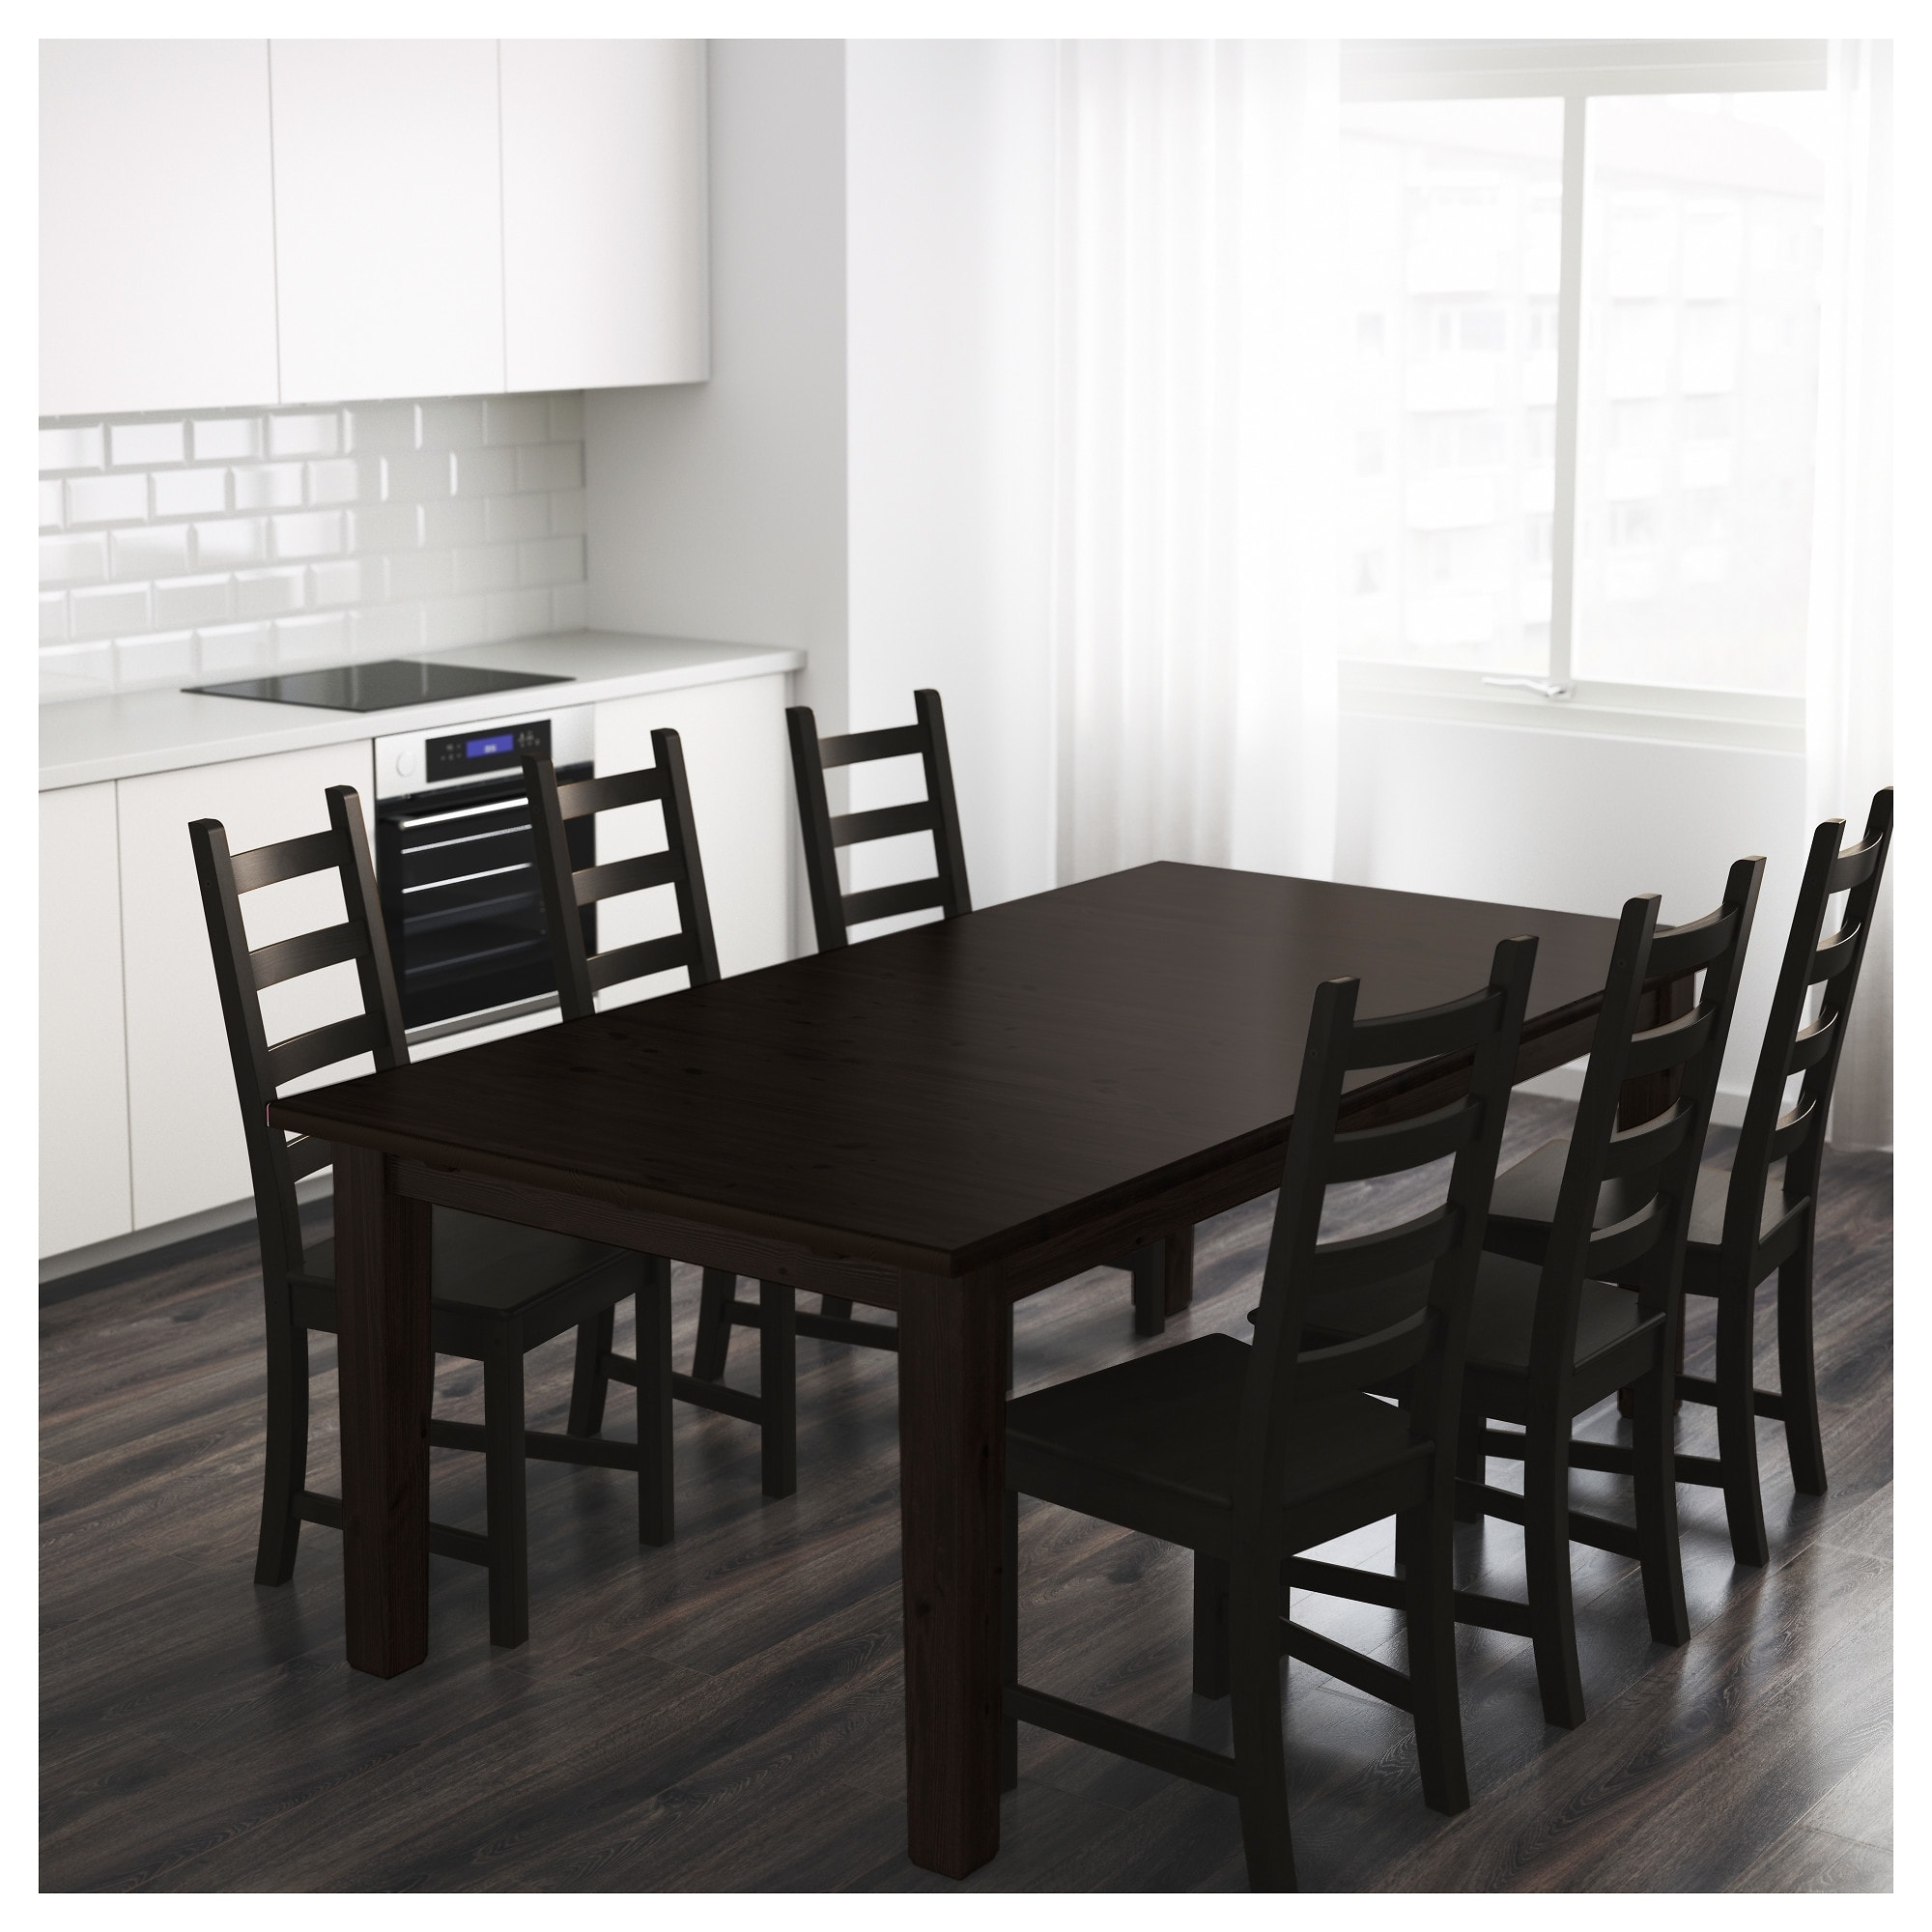 Ikea Round Dining Tables Set with Most Up-to-Date Stornäs Extendable Table - Ikea